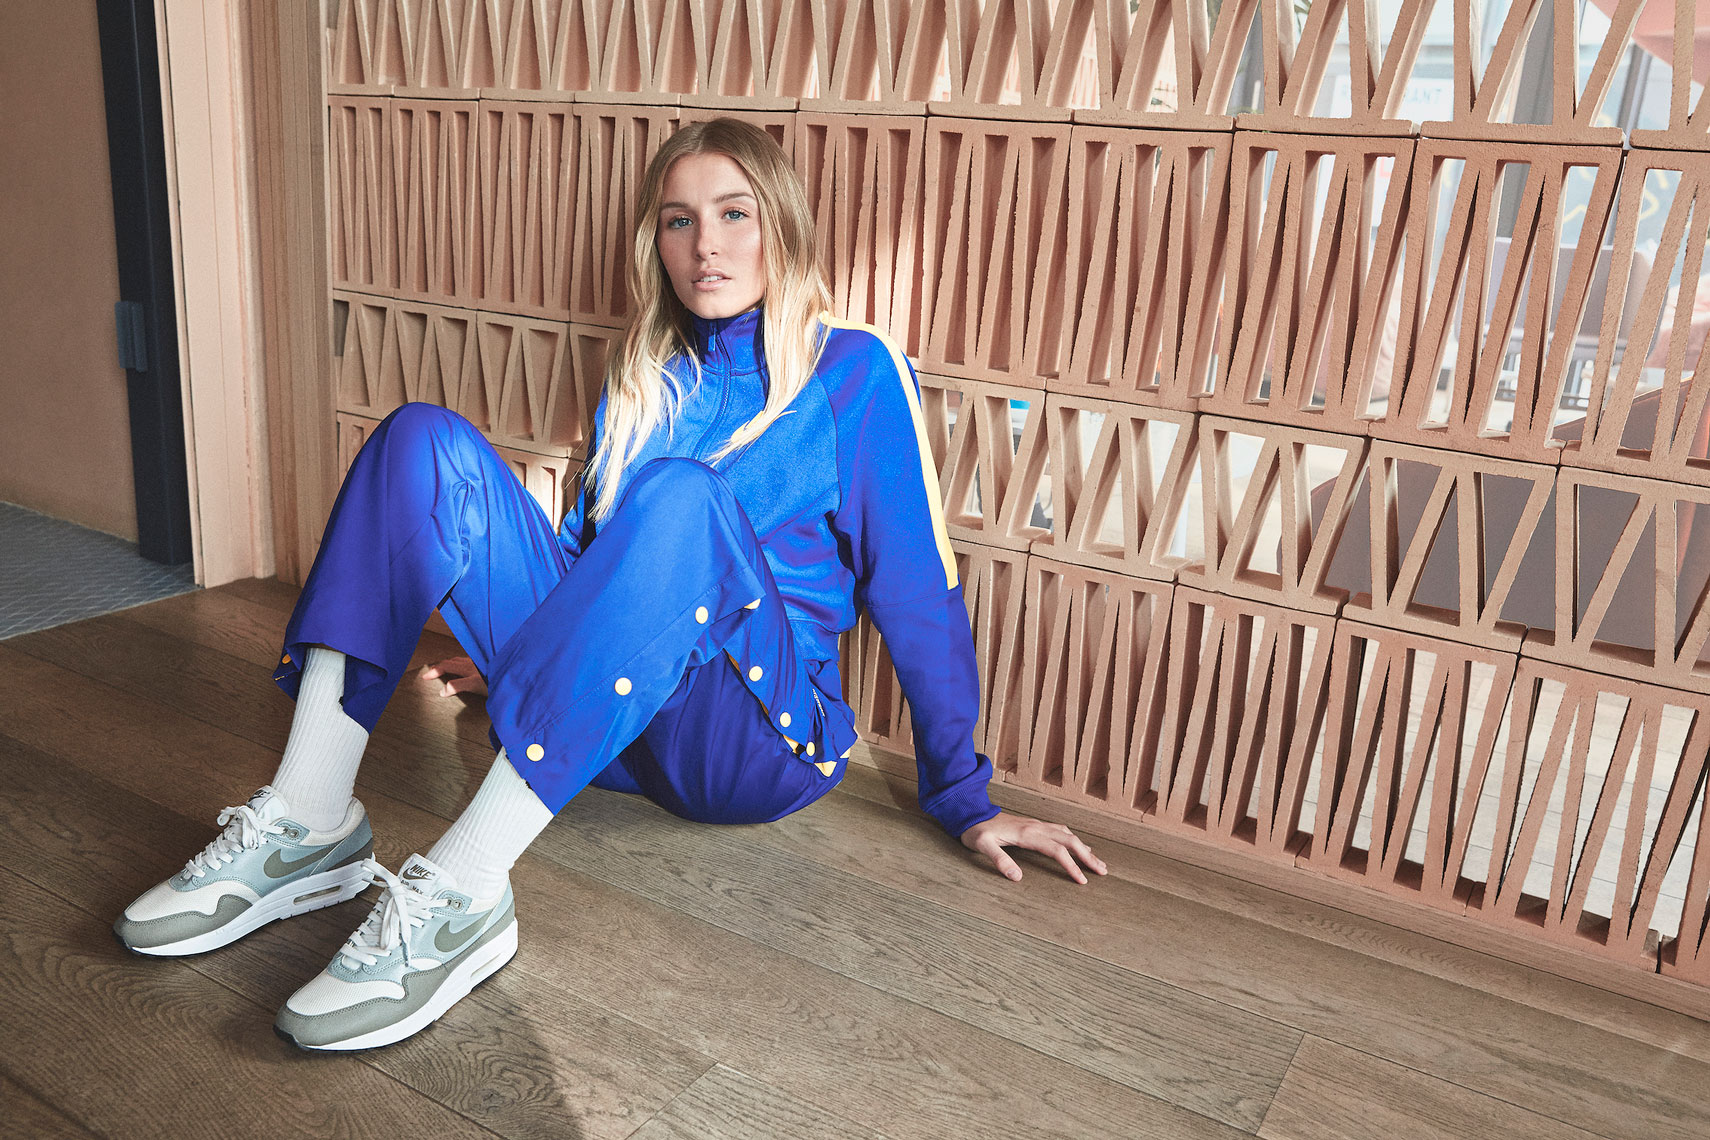 issie-gibbons-fashion-stylist-nike-airmax-leah-williamsonn-campaign-blue